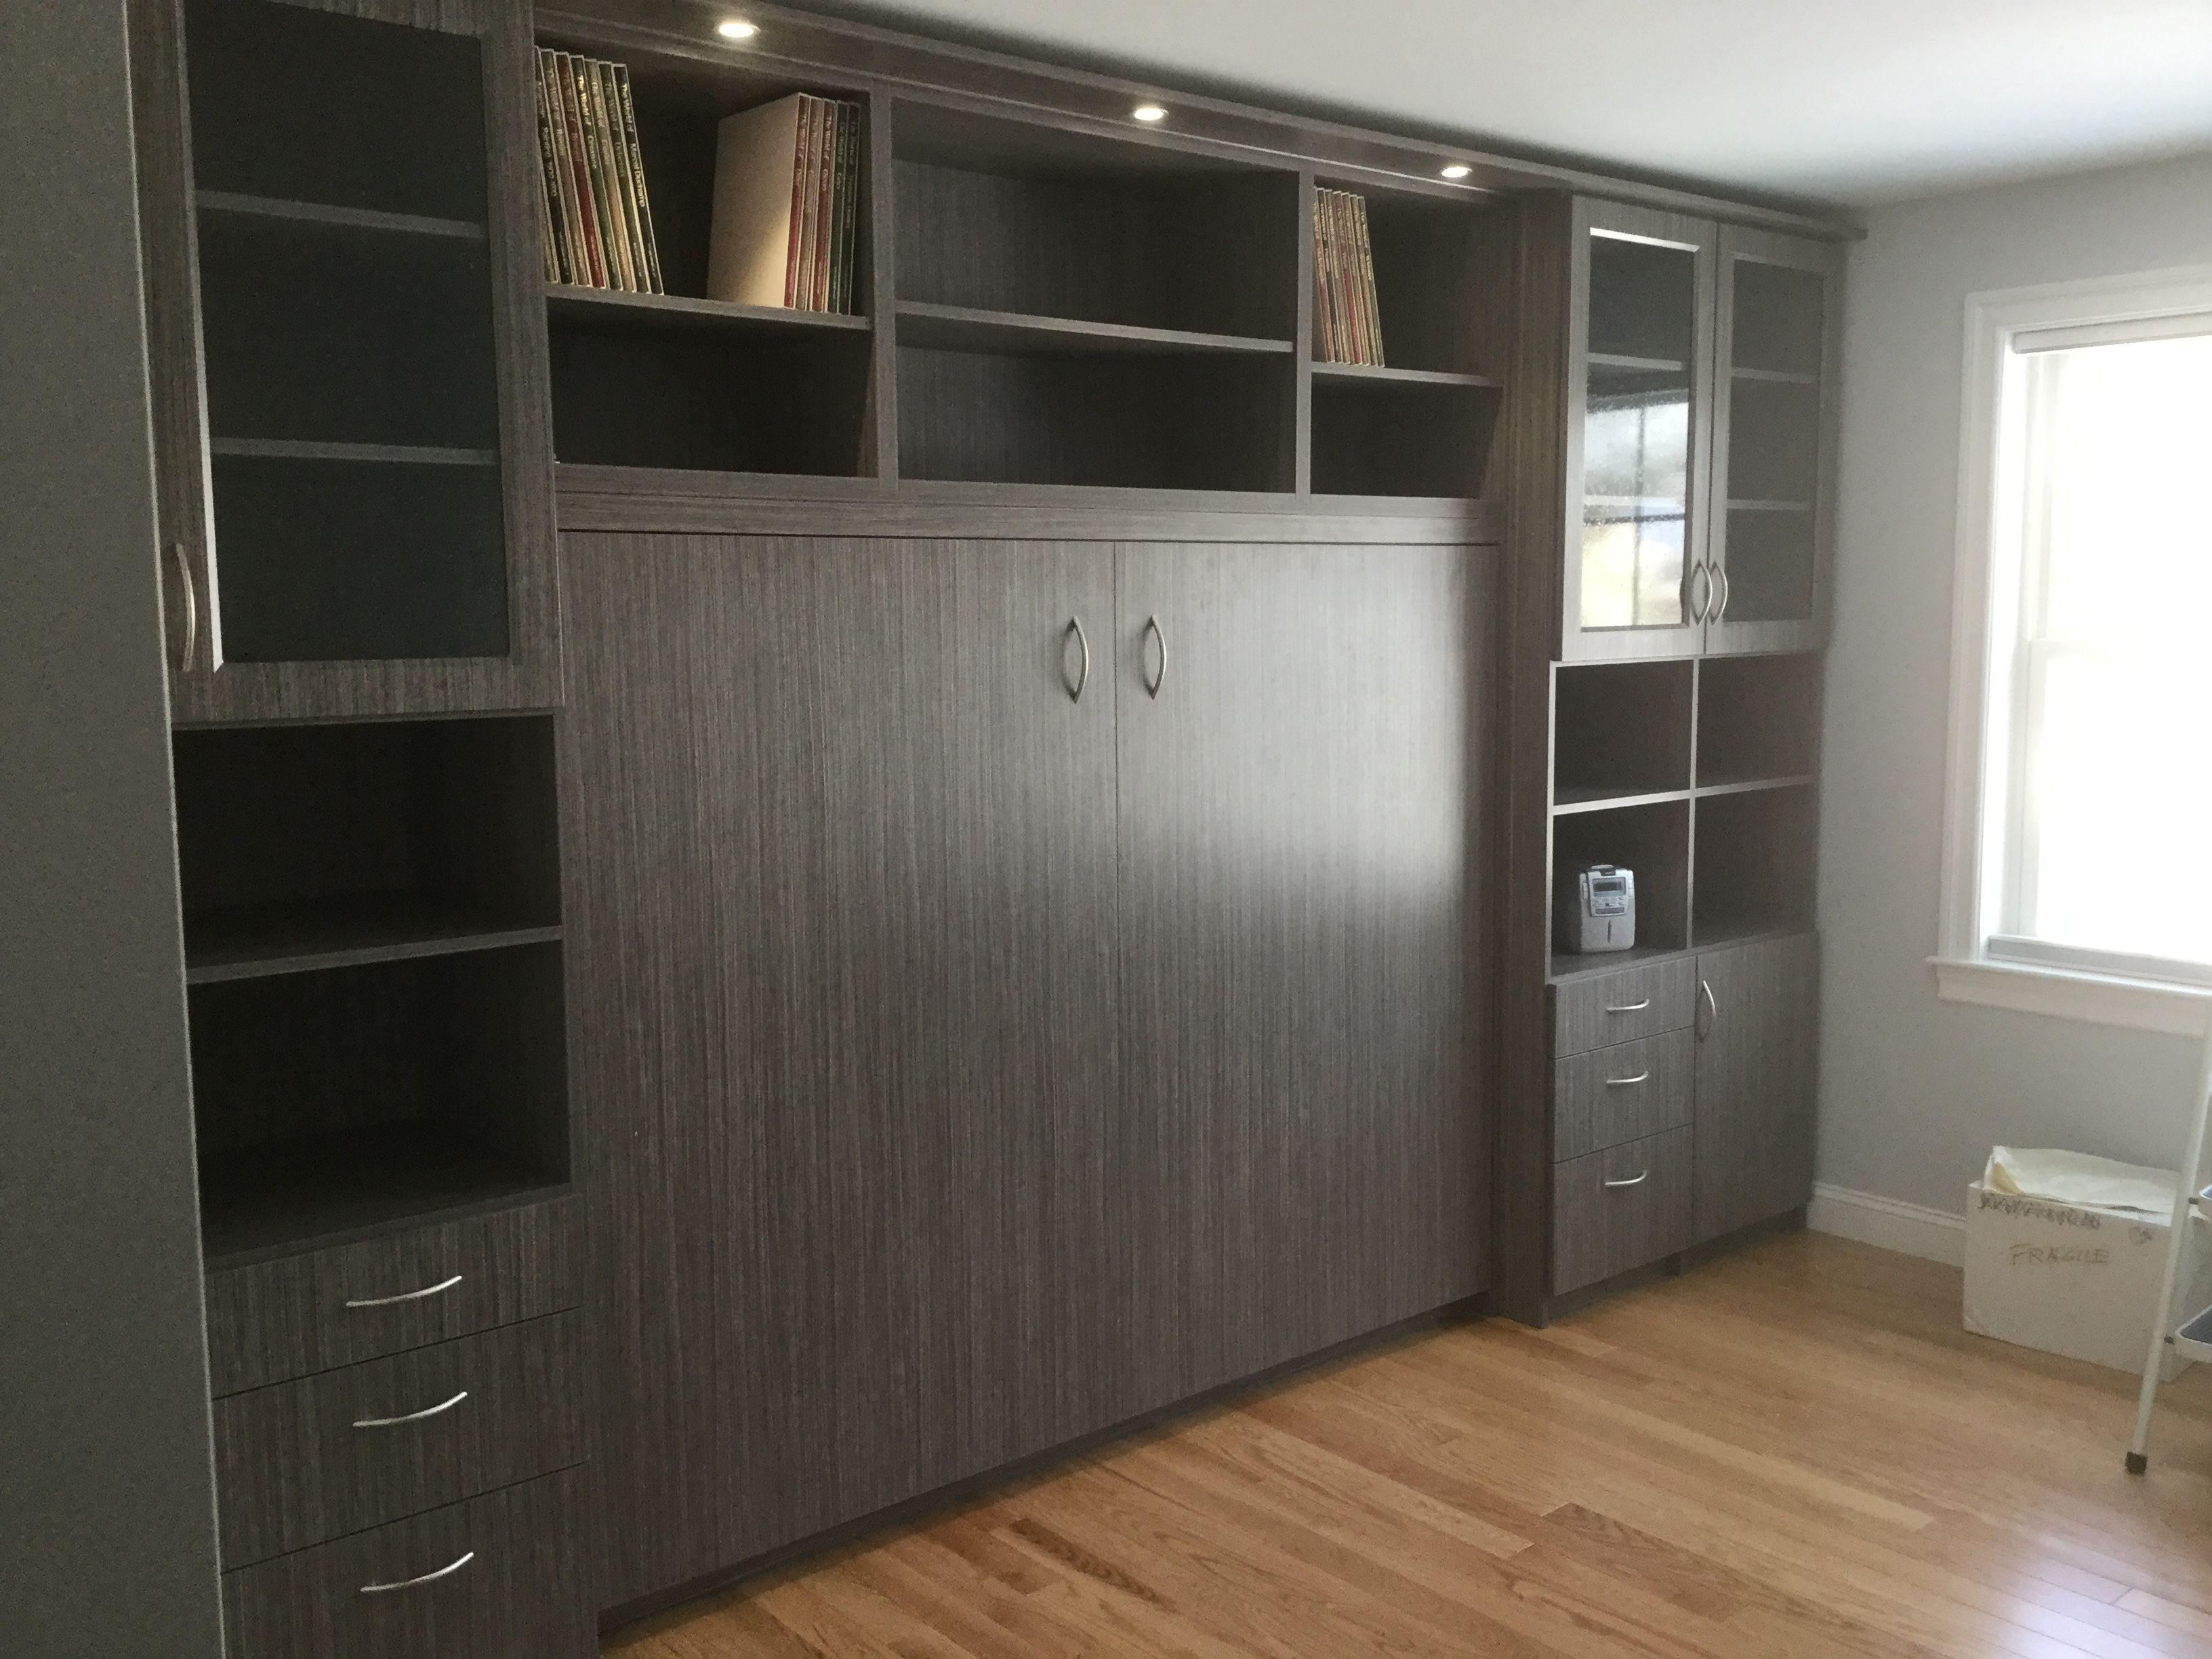 This beautiful murphy bed in the home office hides away beautifully